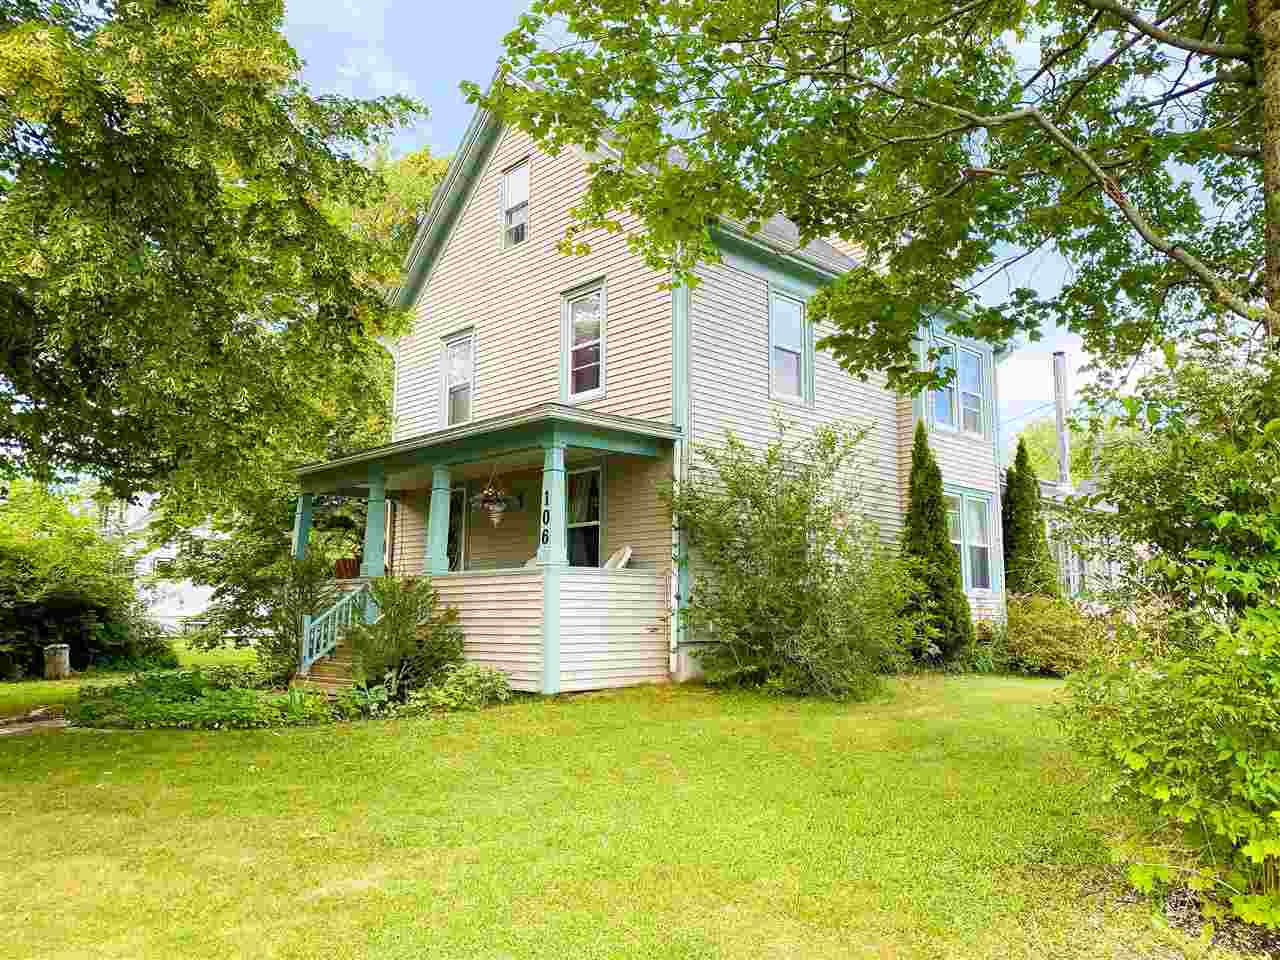 Main Photo: 106 Foster Street in Berwick: 404-Kings County Residential for sale (Annapolis Valley)  : MLS®# 202012192